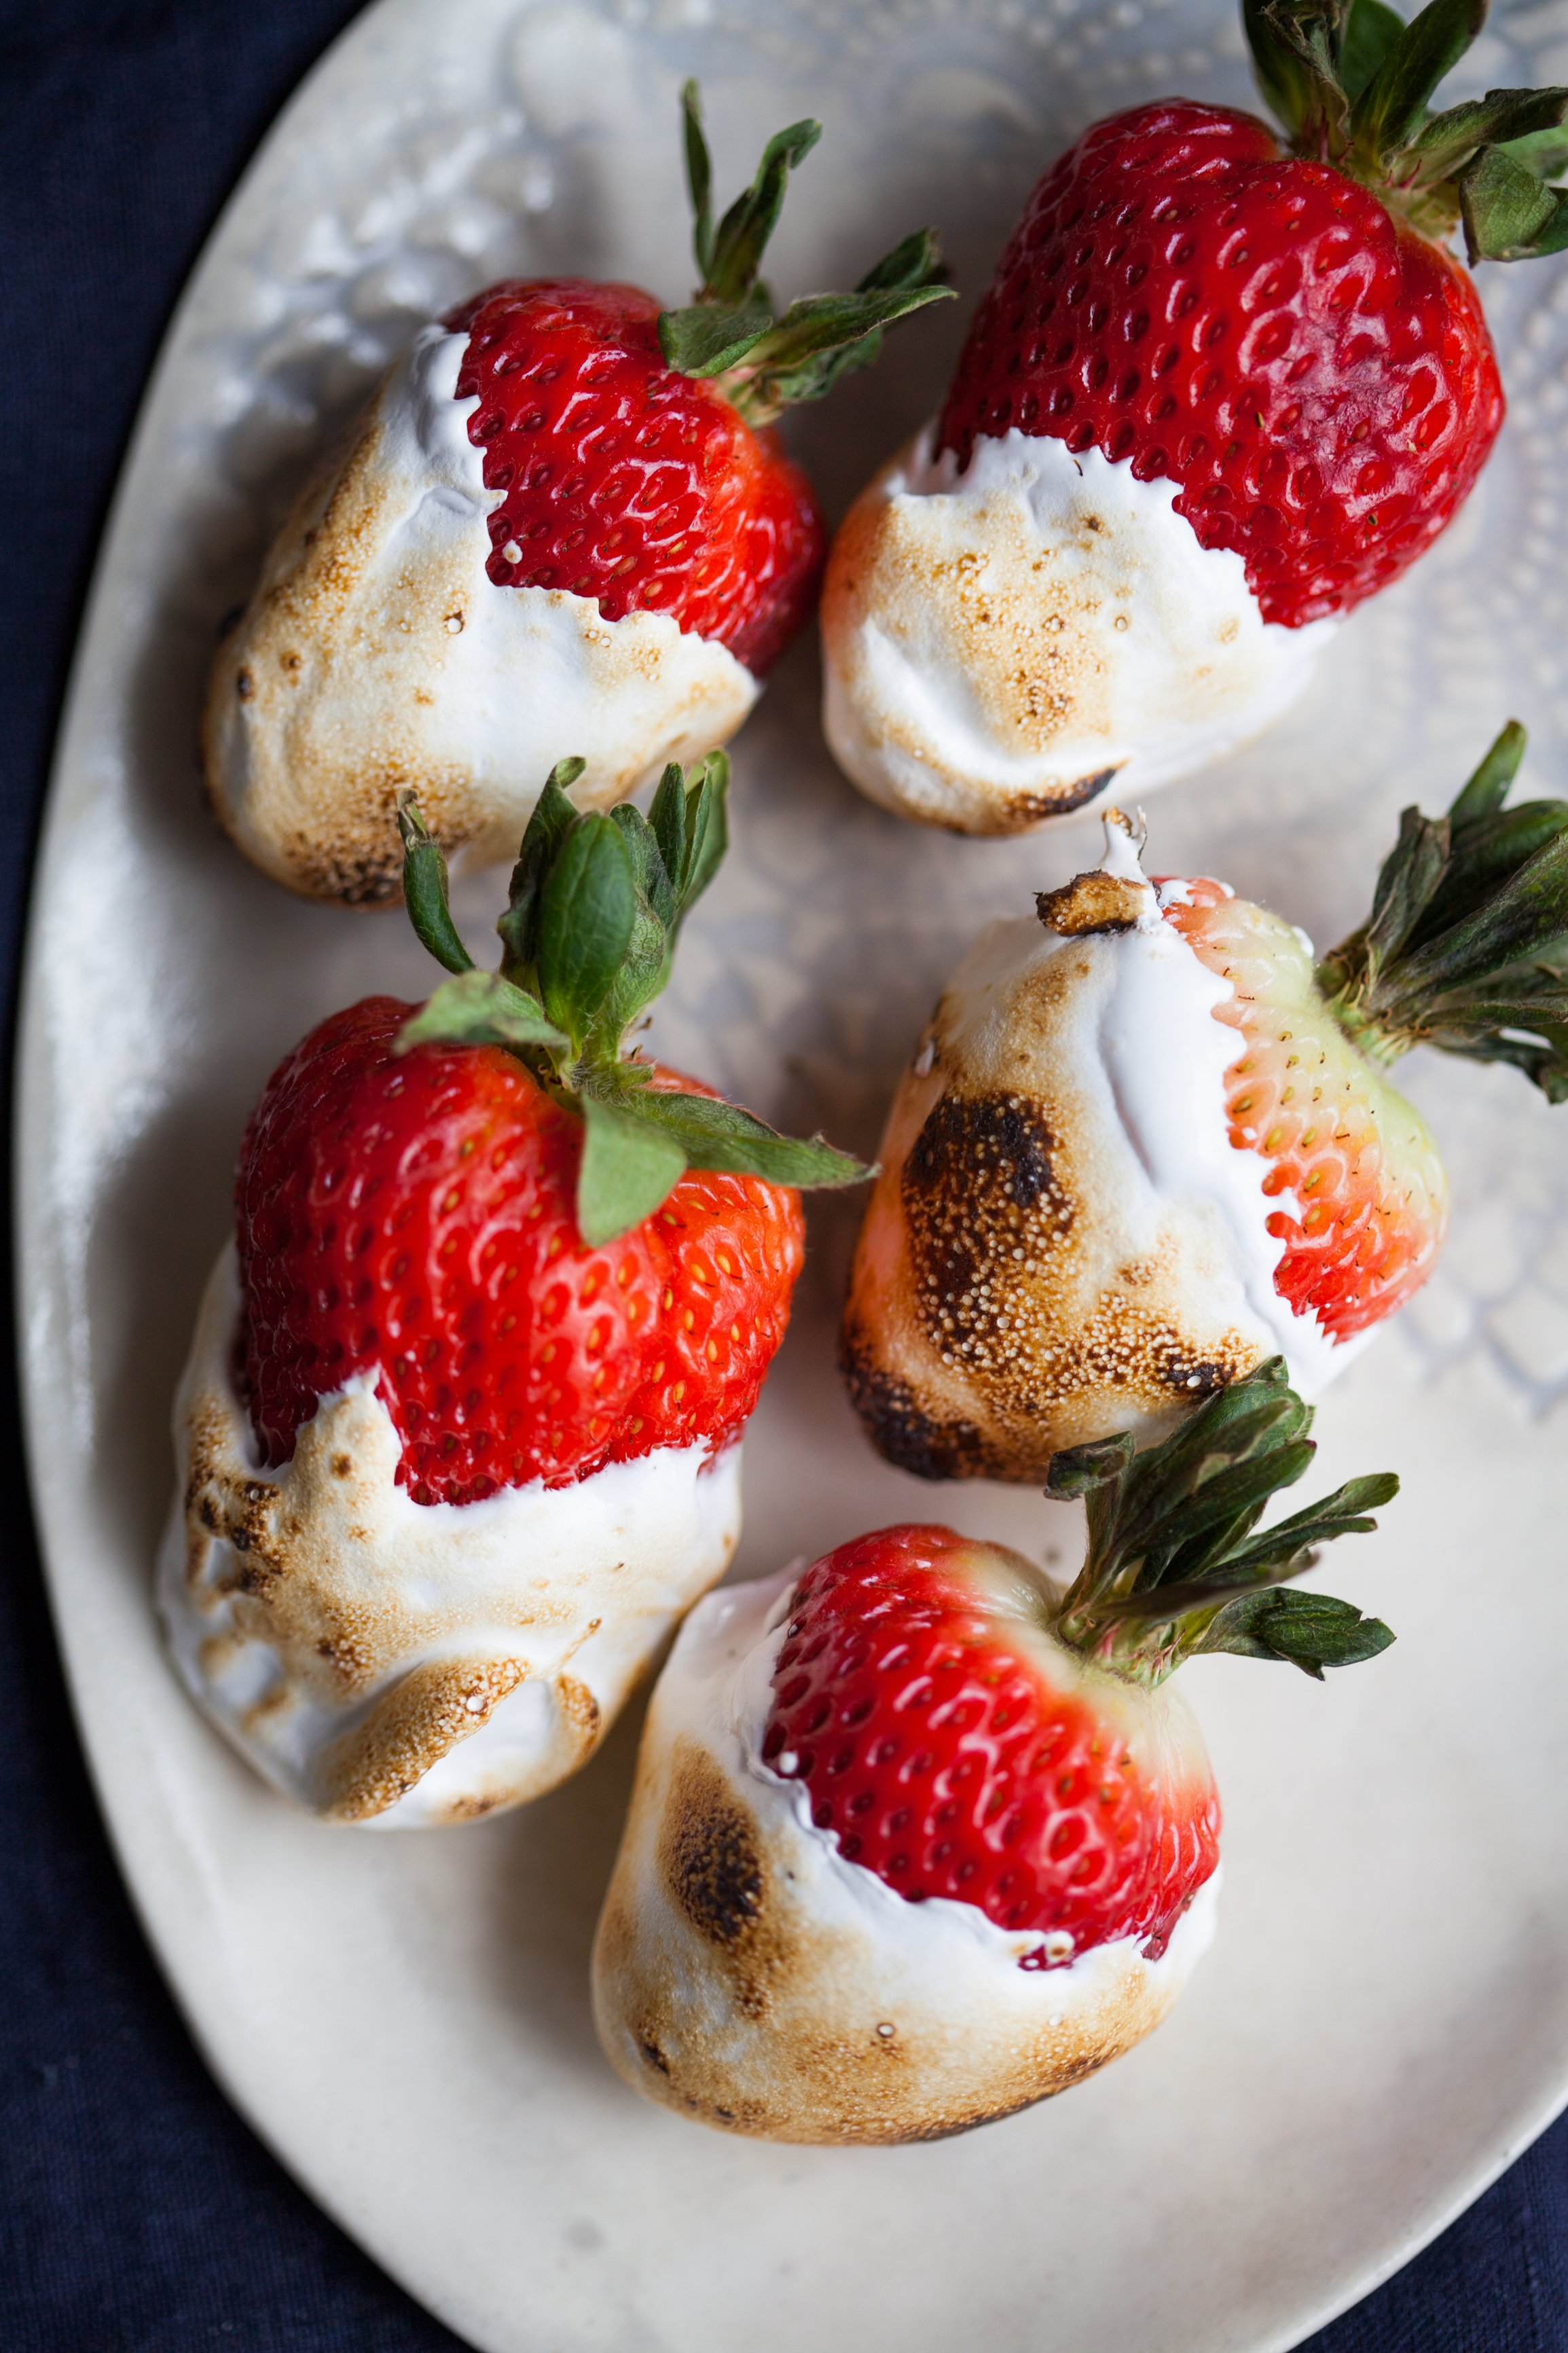 20 Strawberry Recipes to Make Your Summer Even Sweeter | Kitchn